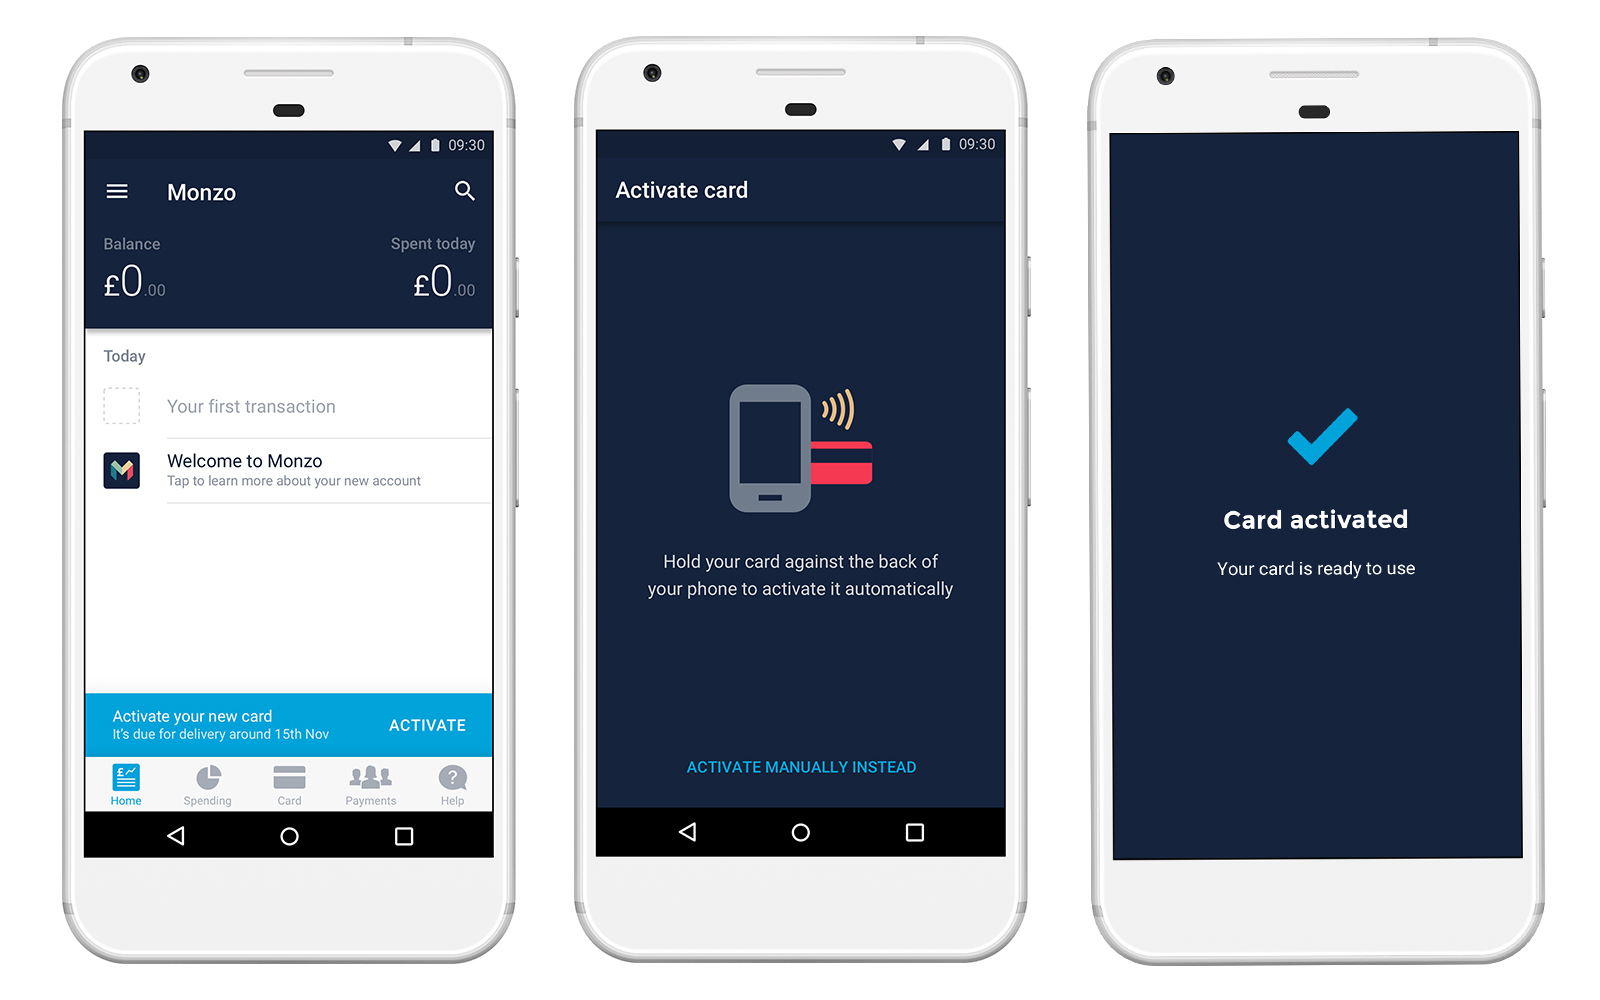 Screenshots of the NFC-powered one-tap card activation flow